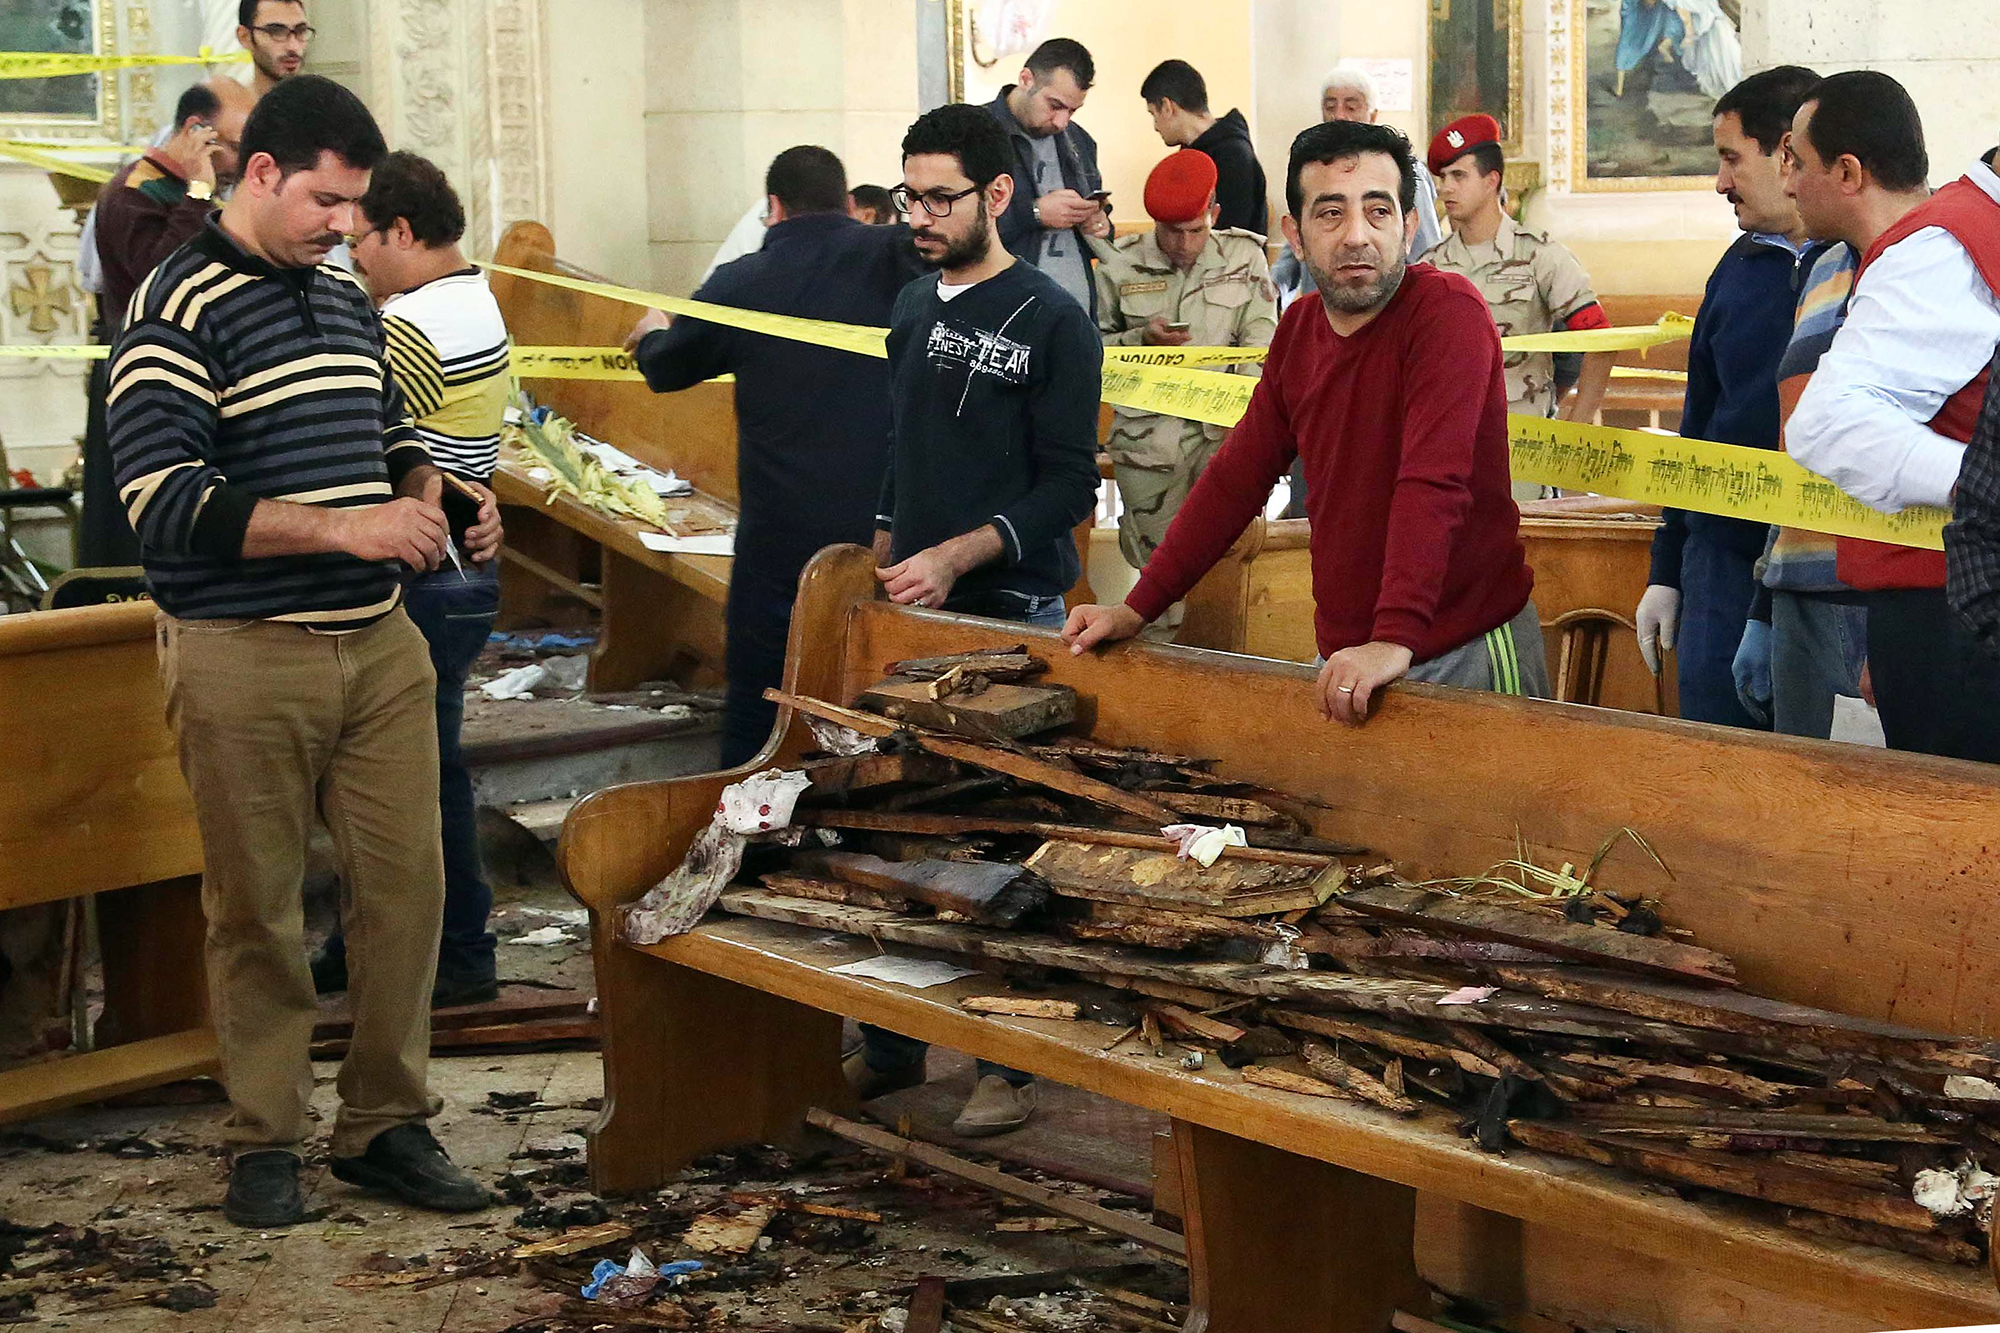 Forensics analysts collect evidence at the site of a bomb blast which struck worshippers gathering to celebrate Palm Sunday at the Mar Girgis Coptic Church in the Nile Delta City of Tanta, 75 miles north of Cairo, on April 9, 2017.